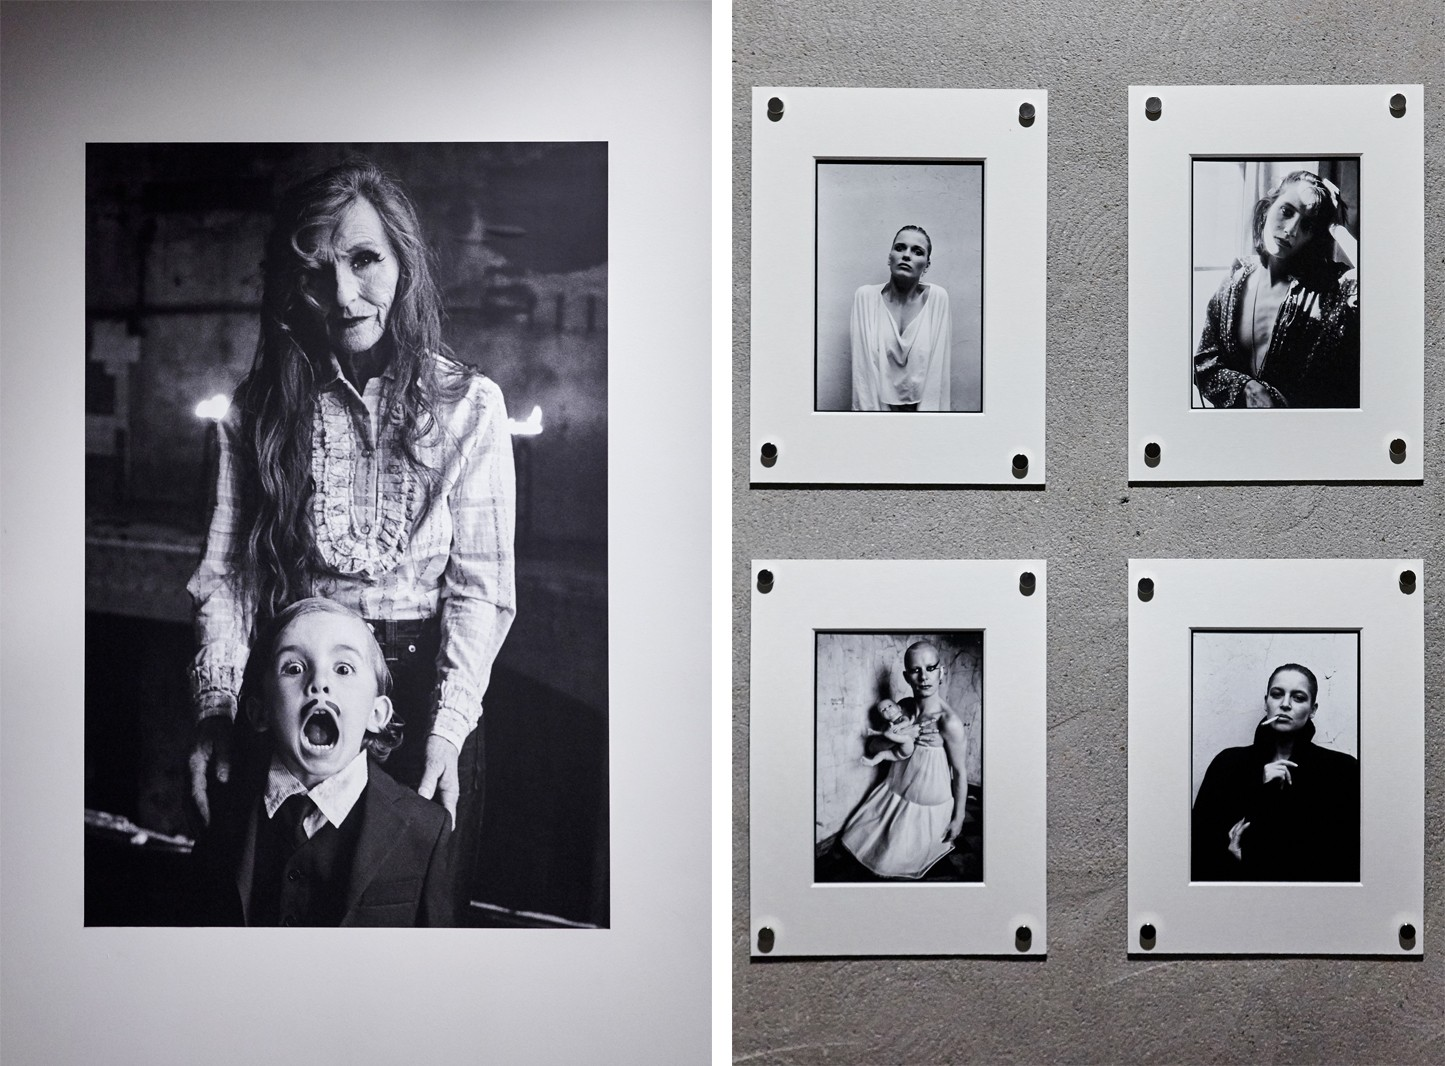 Sven Marquardt's Photography Bridges East Berlin's Past and Present